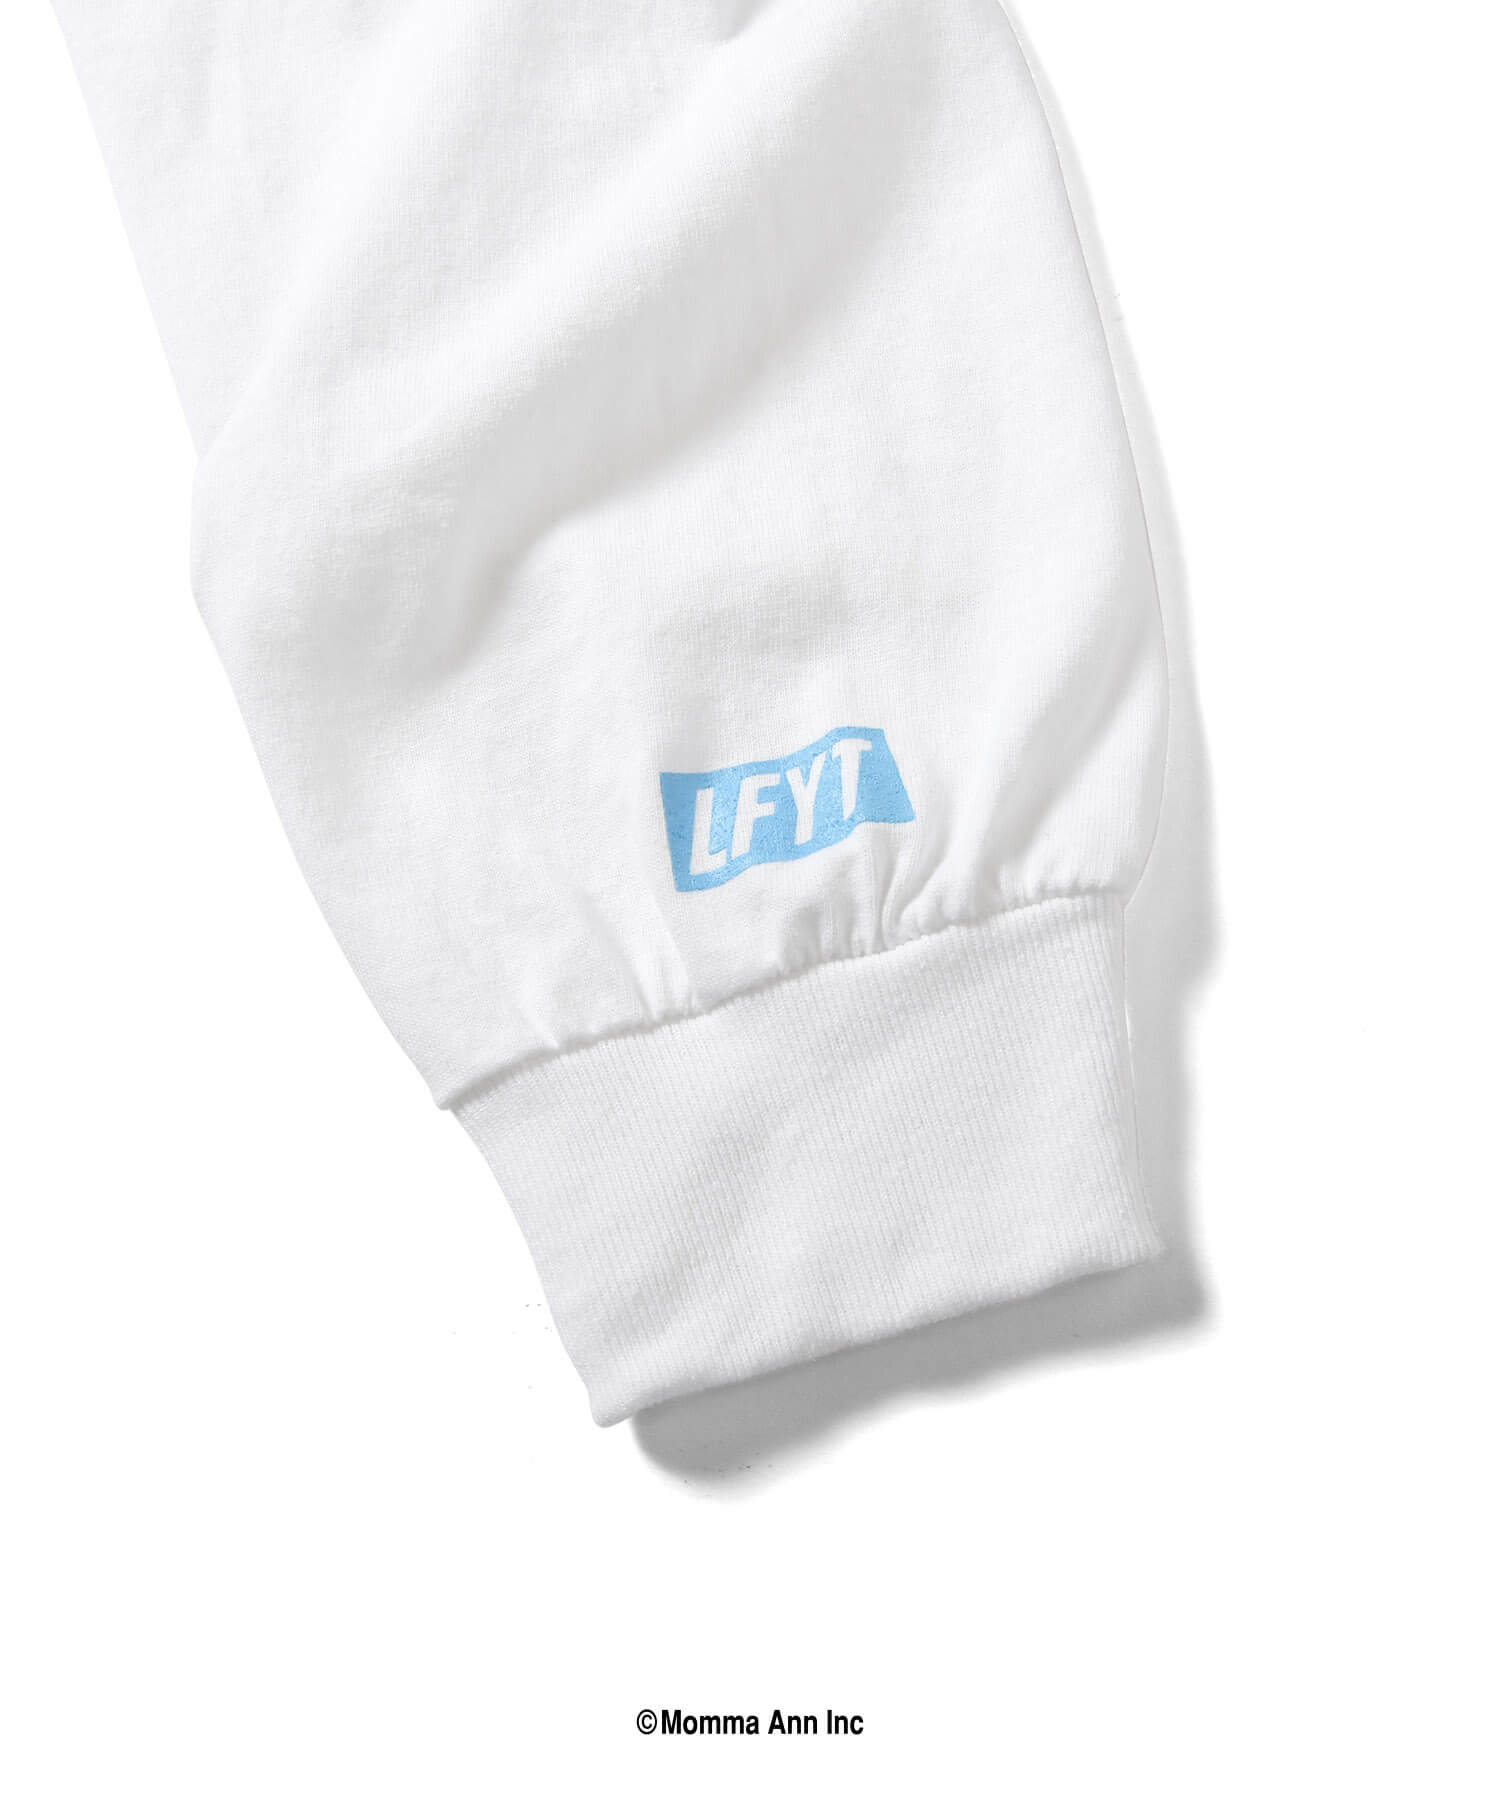 LFYT X NAS WORLD IS YOURS L/S TEE LS210106 WHITE